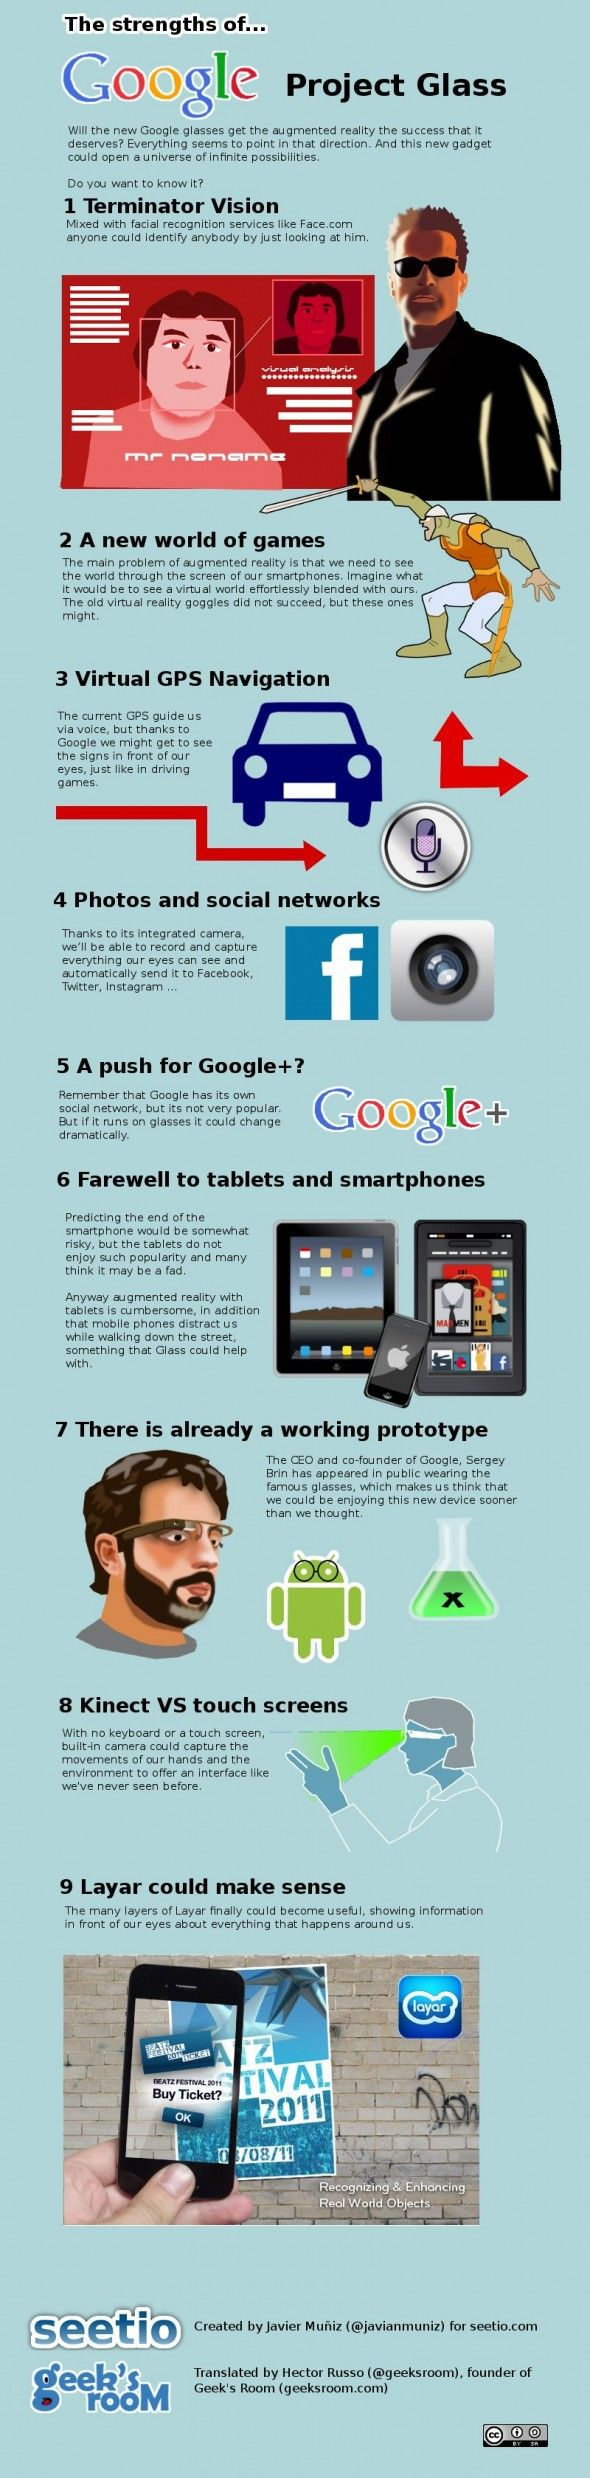 The Strengths Of Google Project Glass [INFOGRAPHIC] google glass